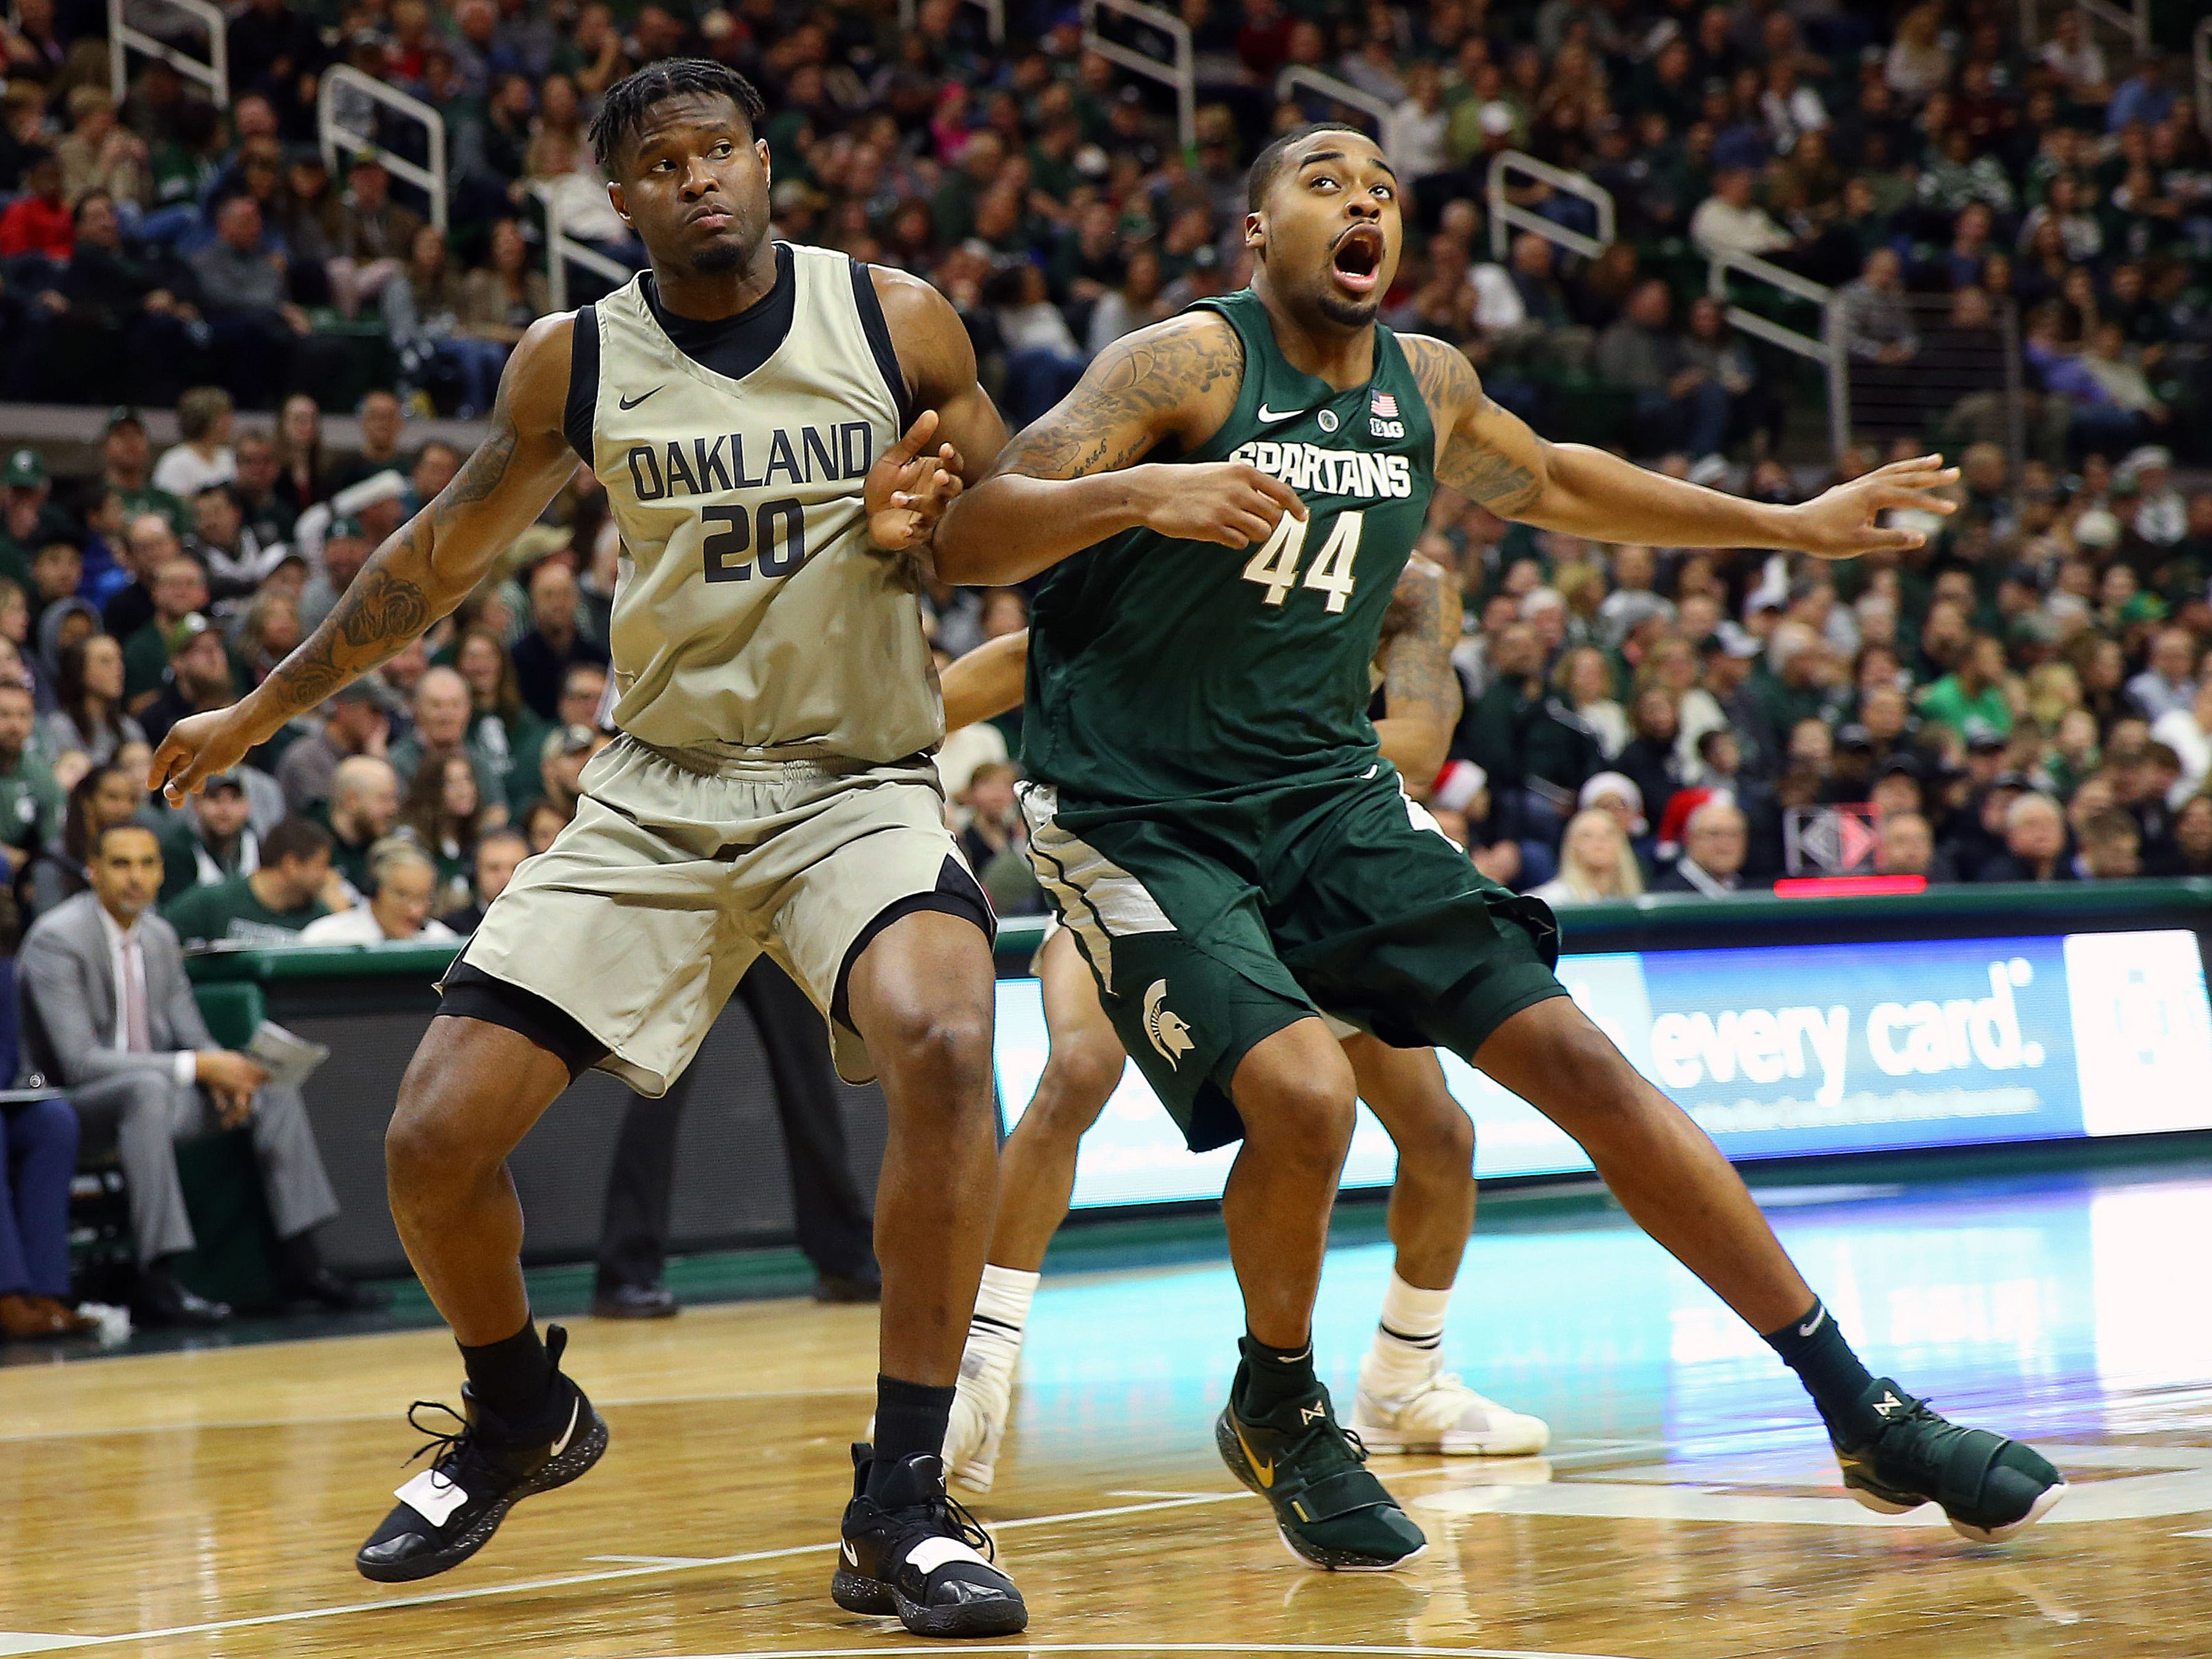 Michigan State Spartans forward Nick Ward (44) and Oakland Golden Grizzlies center Babatunde Sowunmi (20) fight for position during the second half of a game at the Breslin Center.